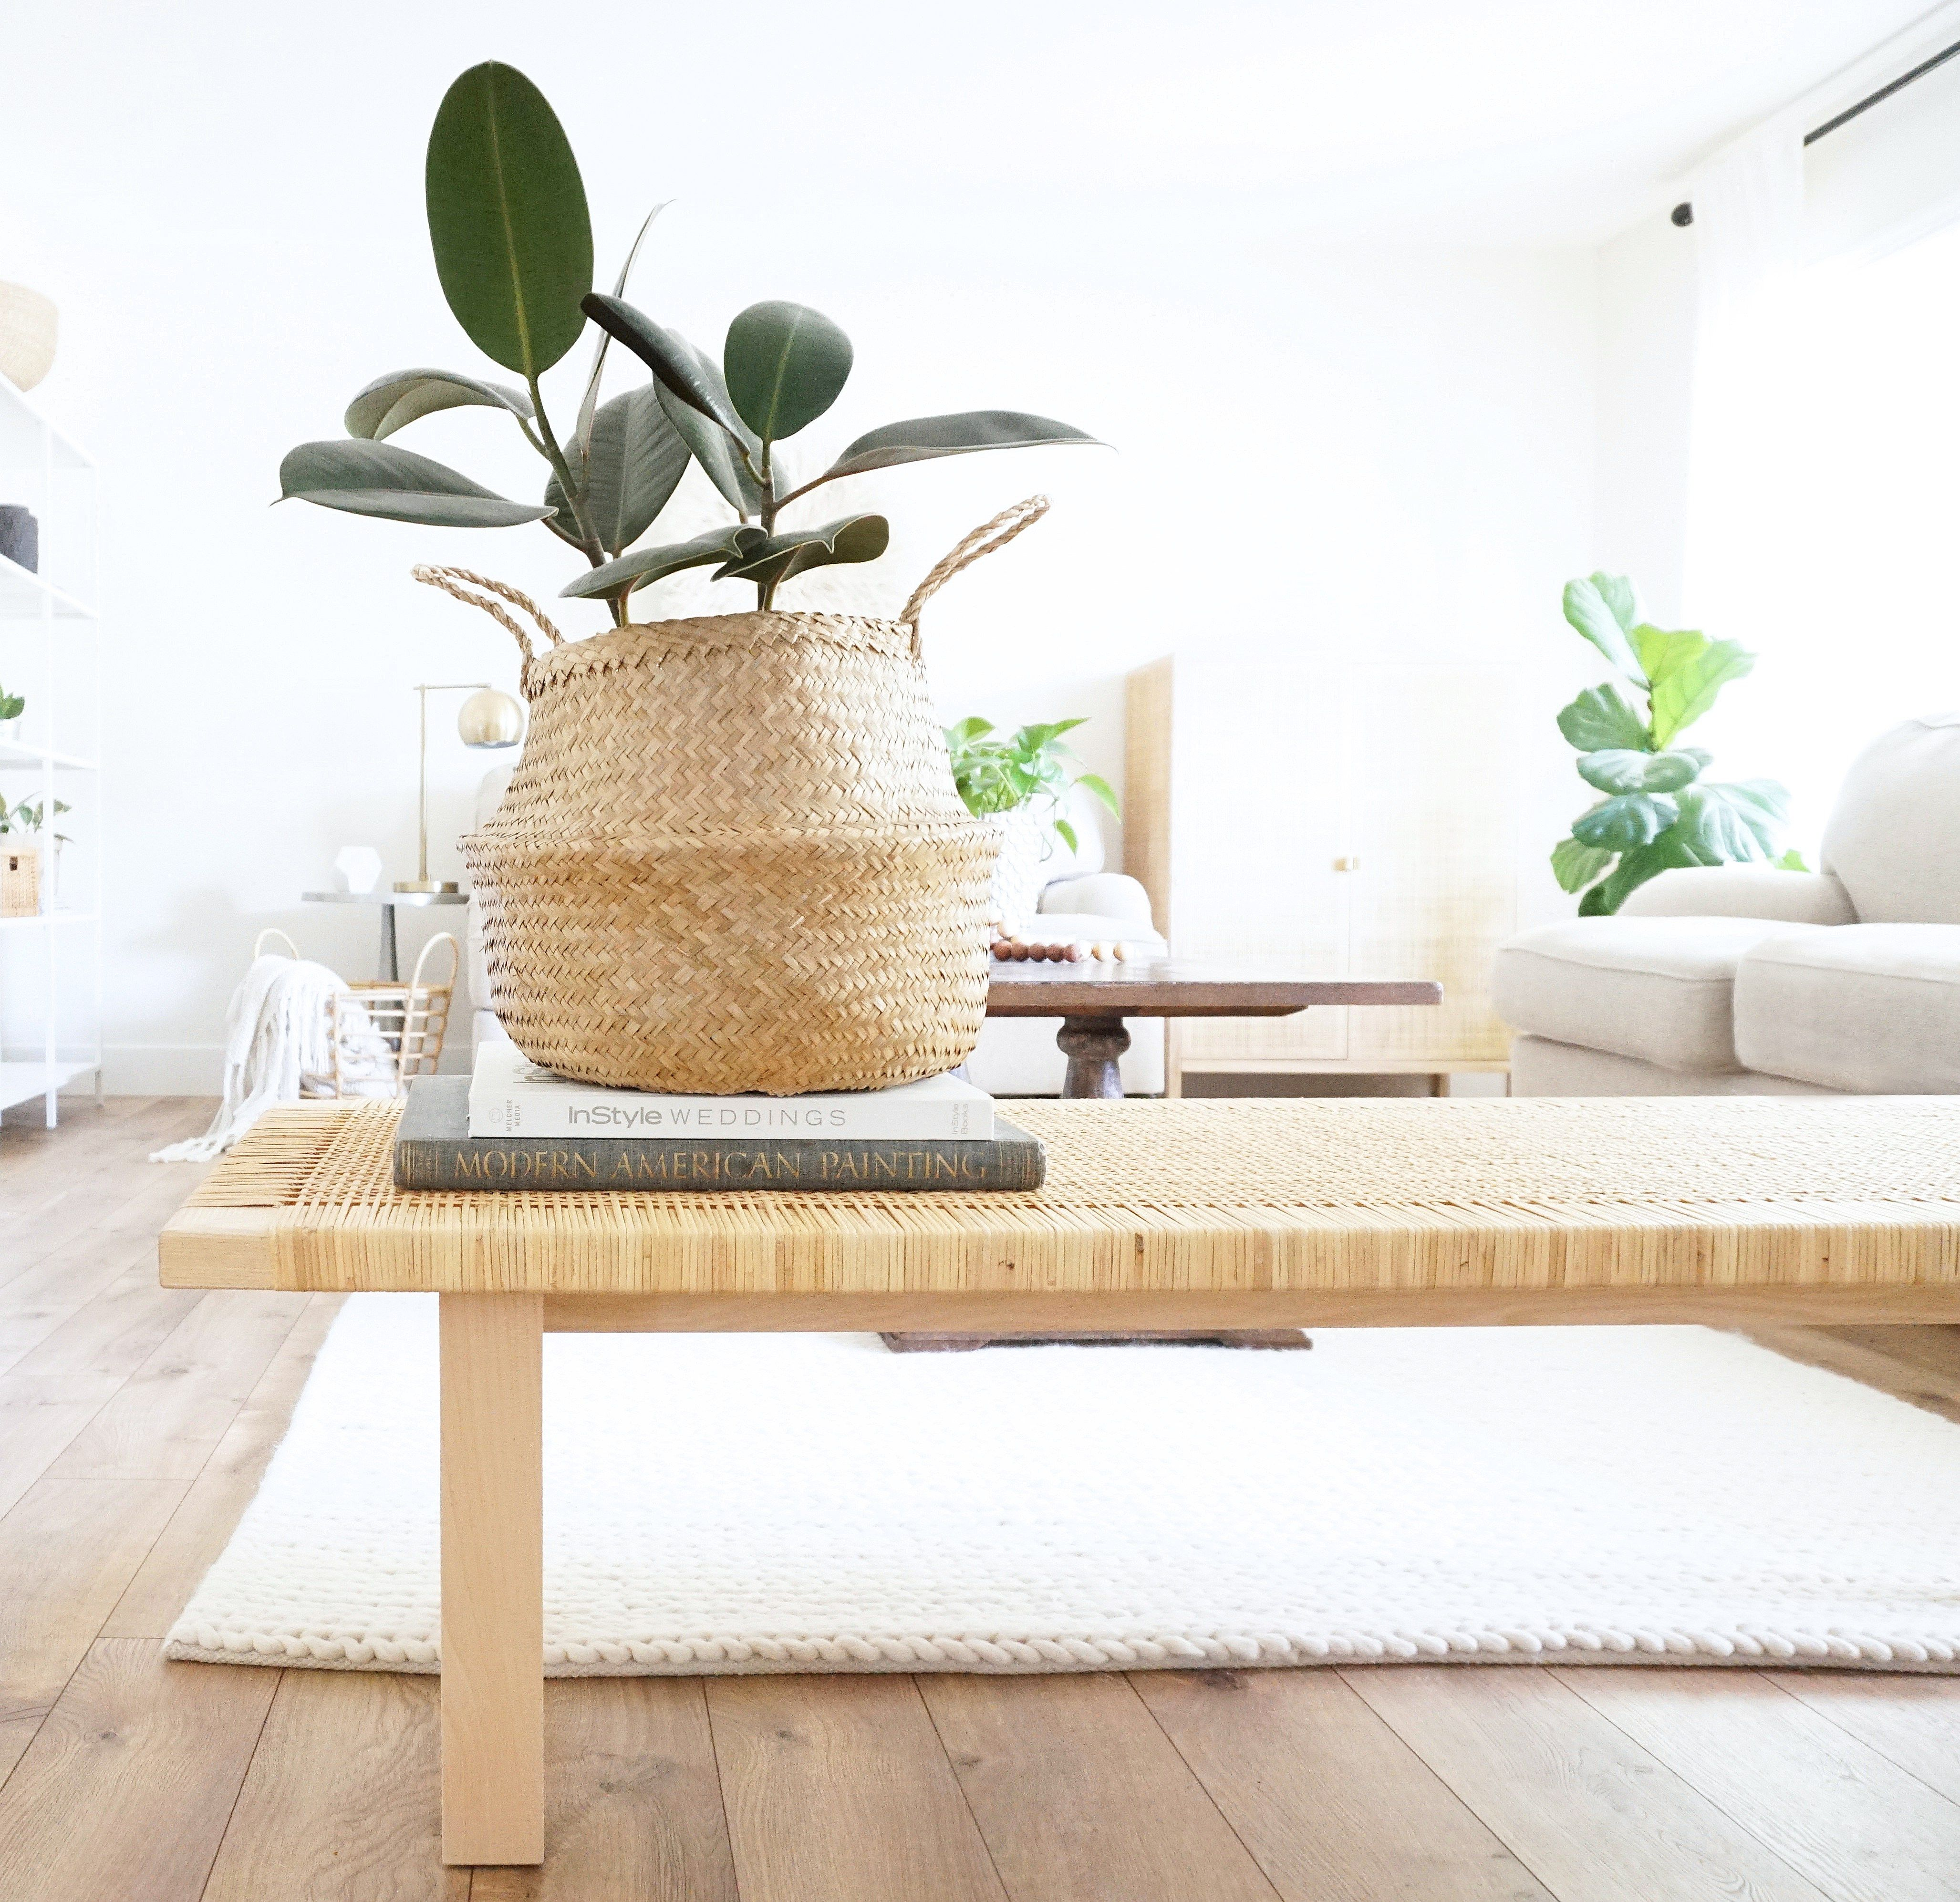 Thoughts On The Ikea Stockholm Spring 2017 Line A Few Other New Ikea Finds Ikea Stockholm Ikea Finds Ikea Coffee Table